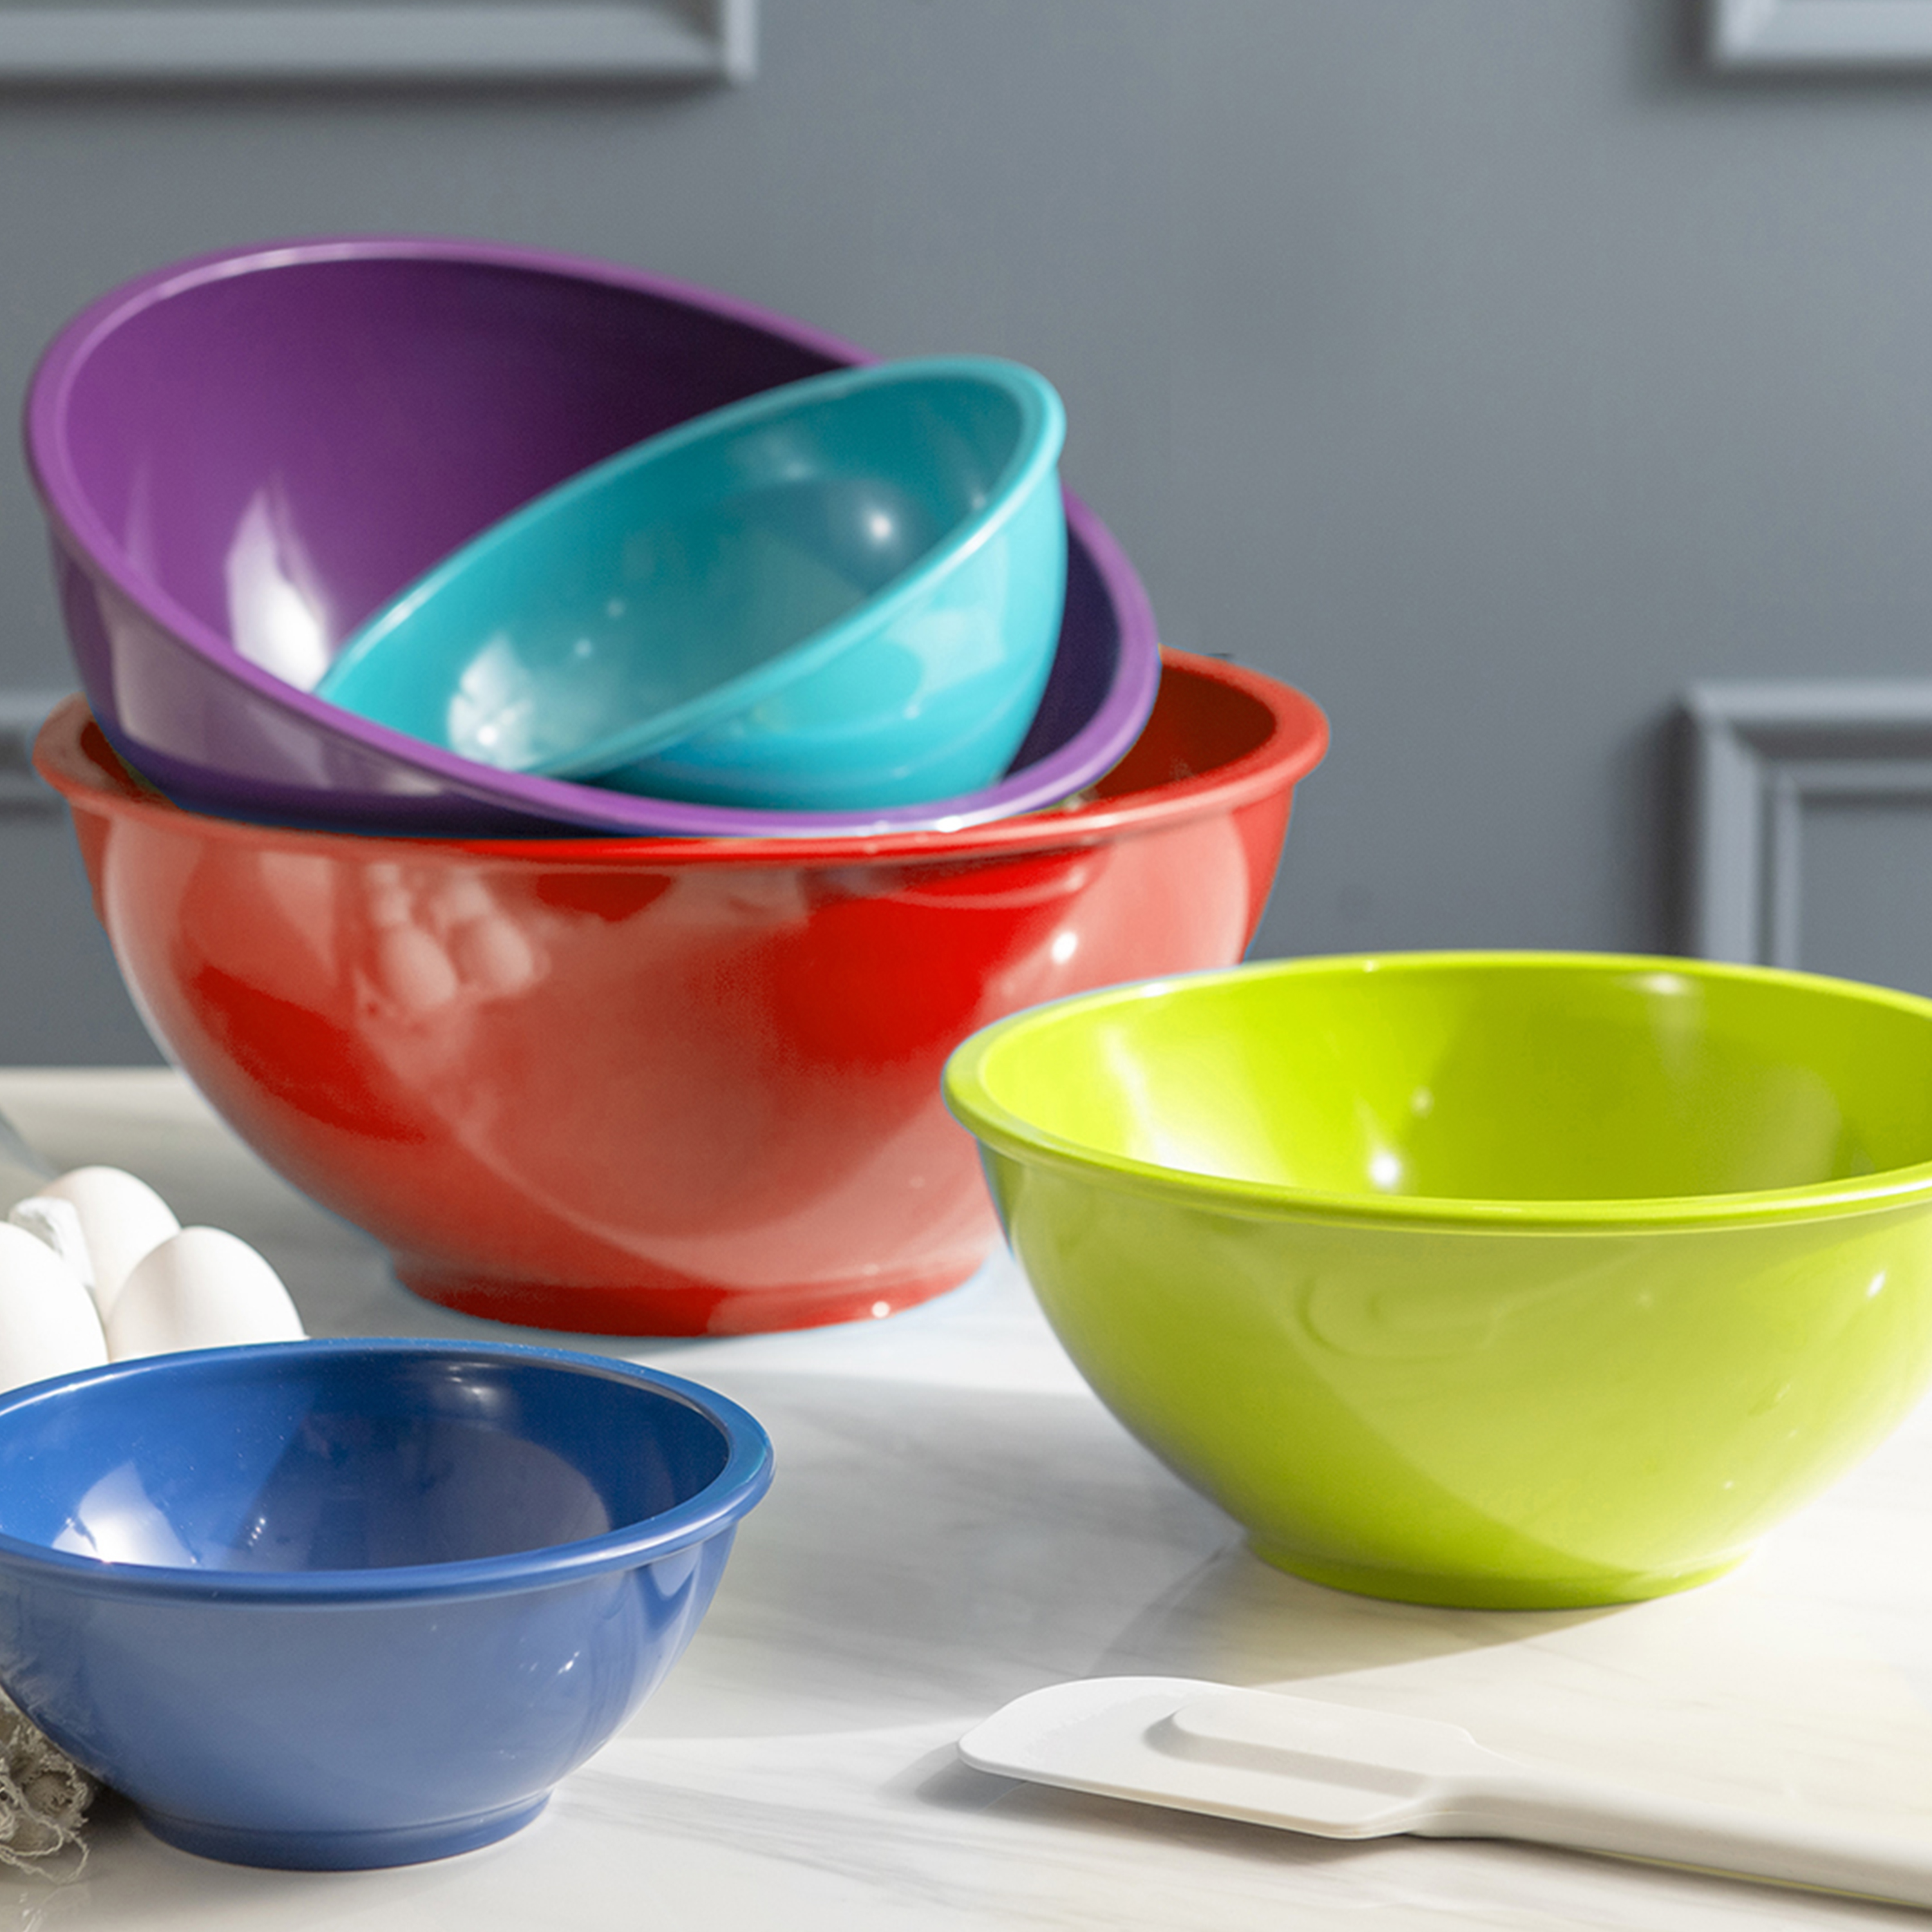 Colorway Plastic Serving and Mixing Bowl Set, Blue and Red, 5-piece set slideshow image 6